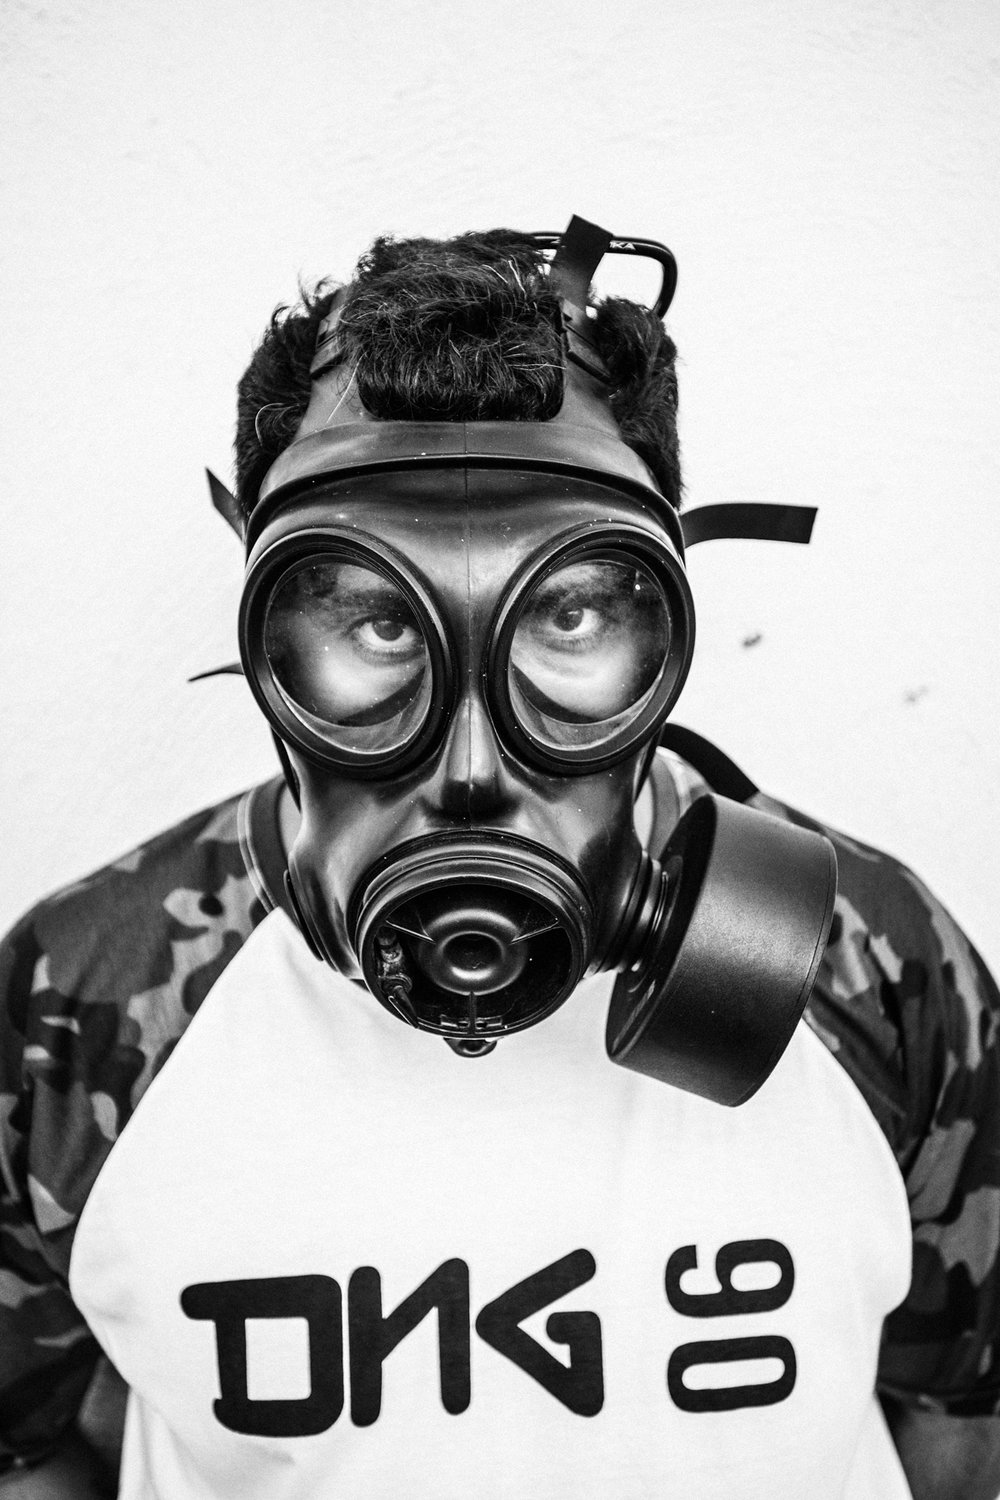 February 2015 - Rio de Janeiro, Brazil: Raul, one of the members of Papo Reto collective, posing with a gas mask